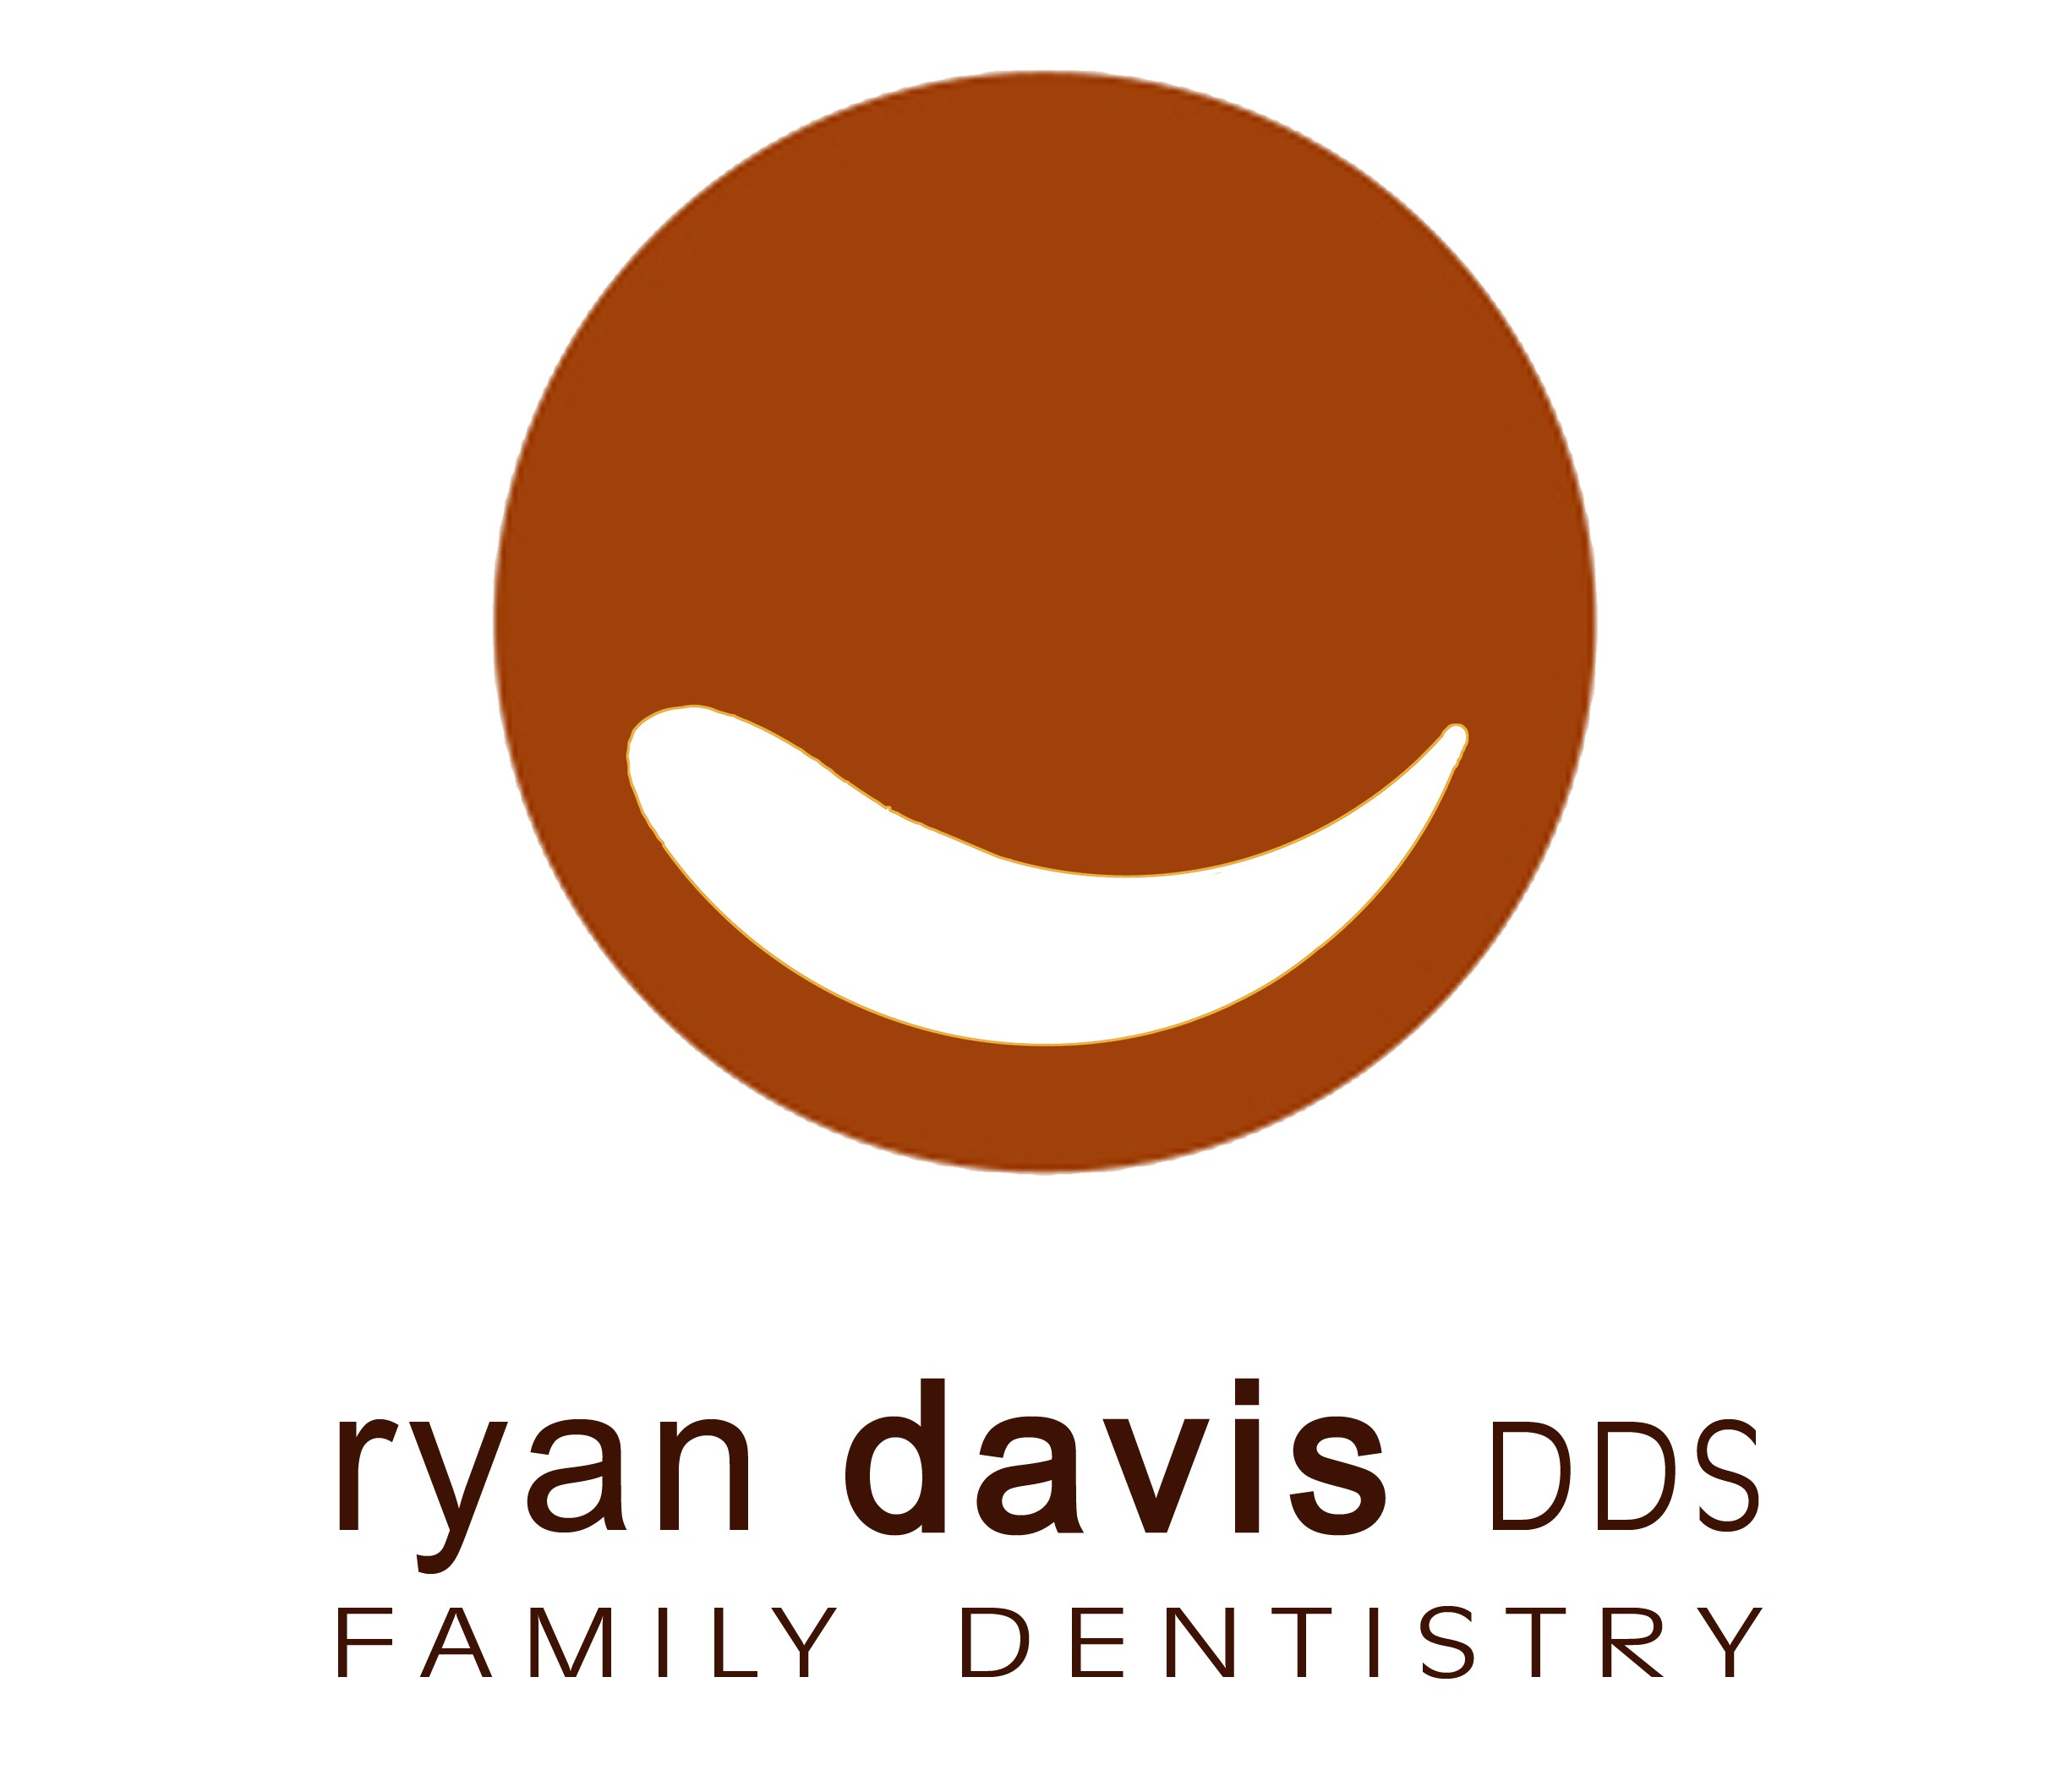 Ryan Davis Family Dentistry.jpg